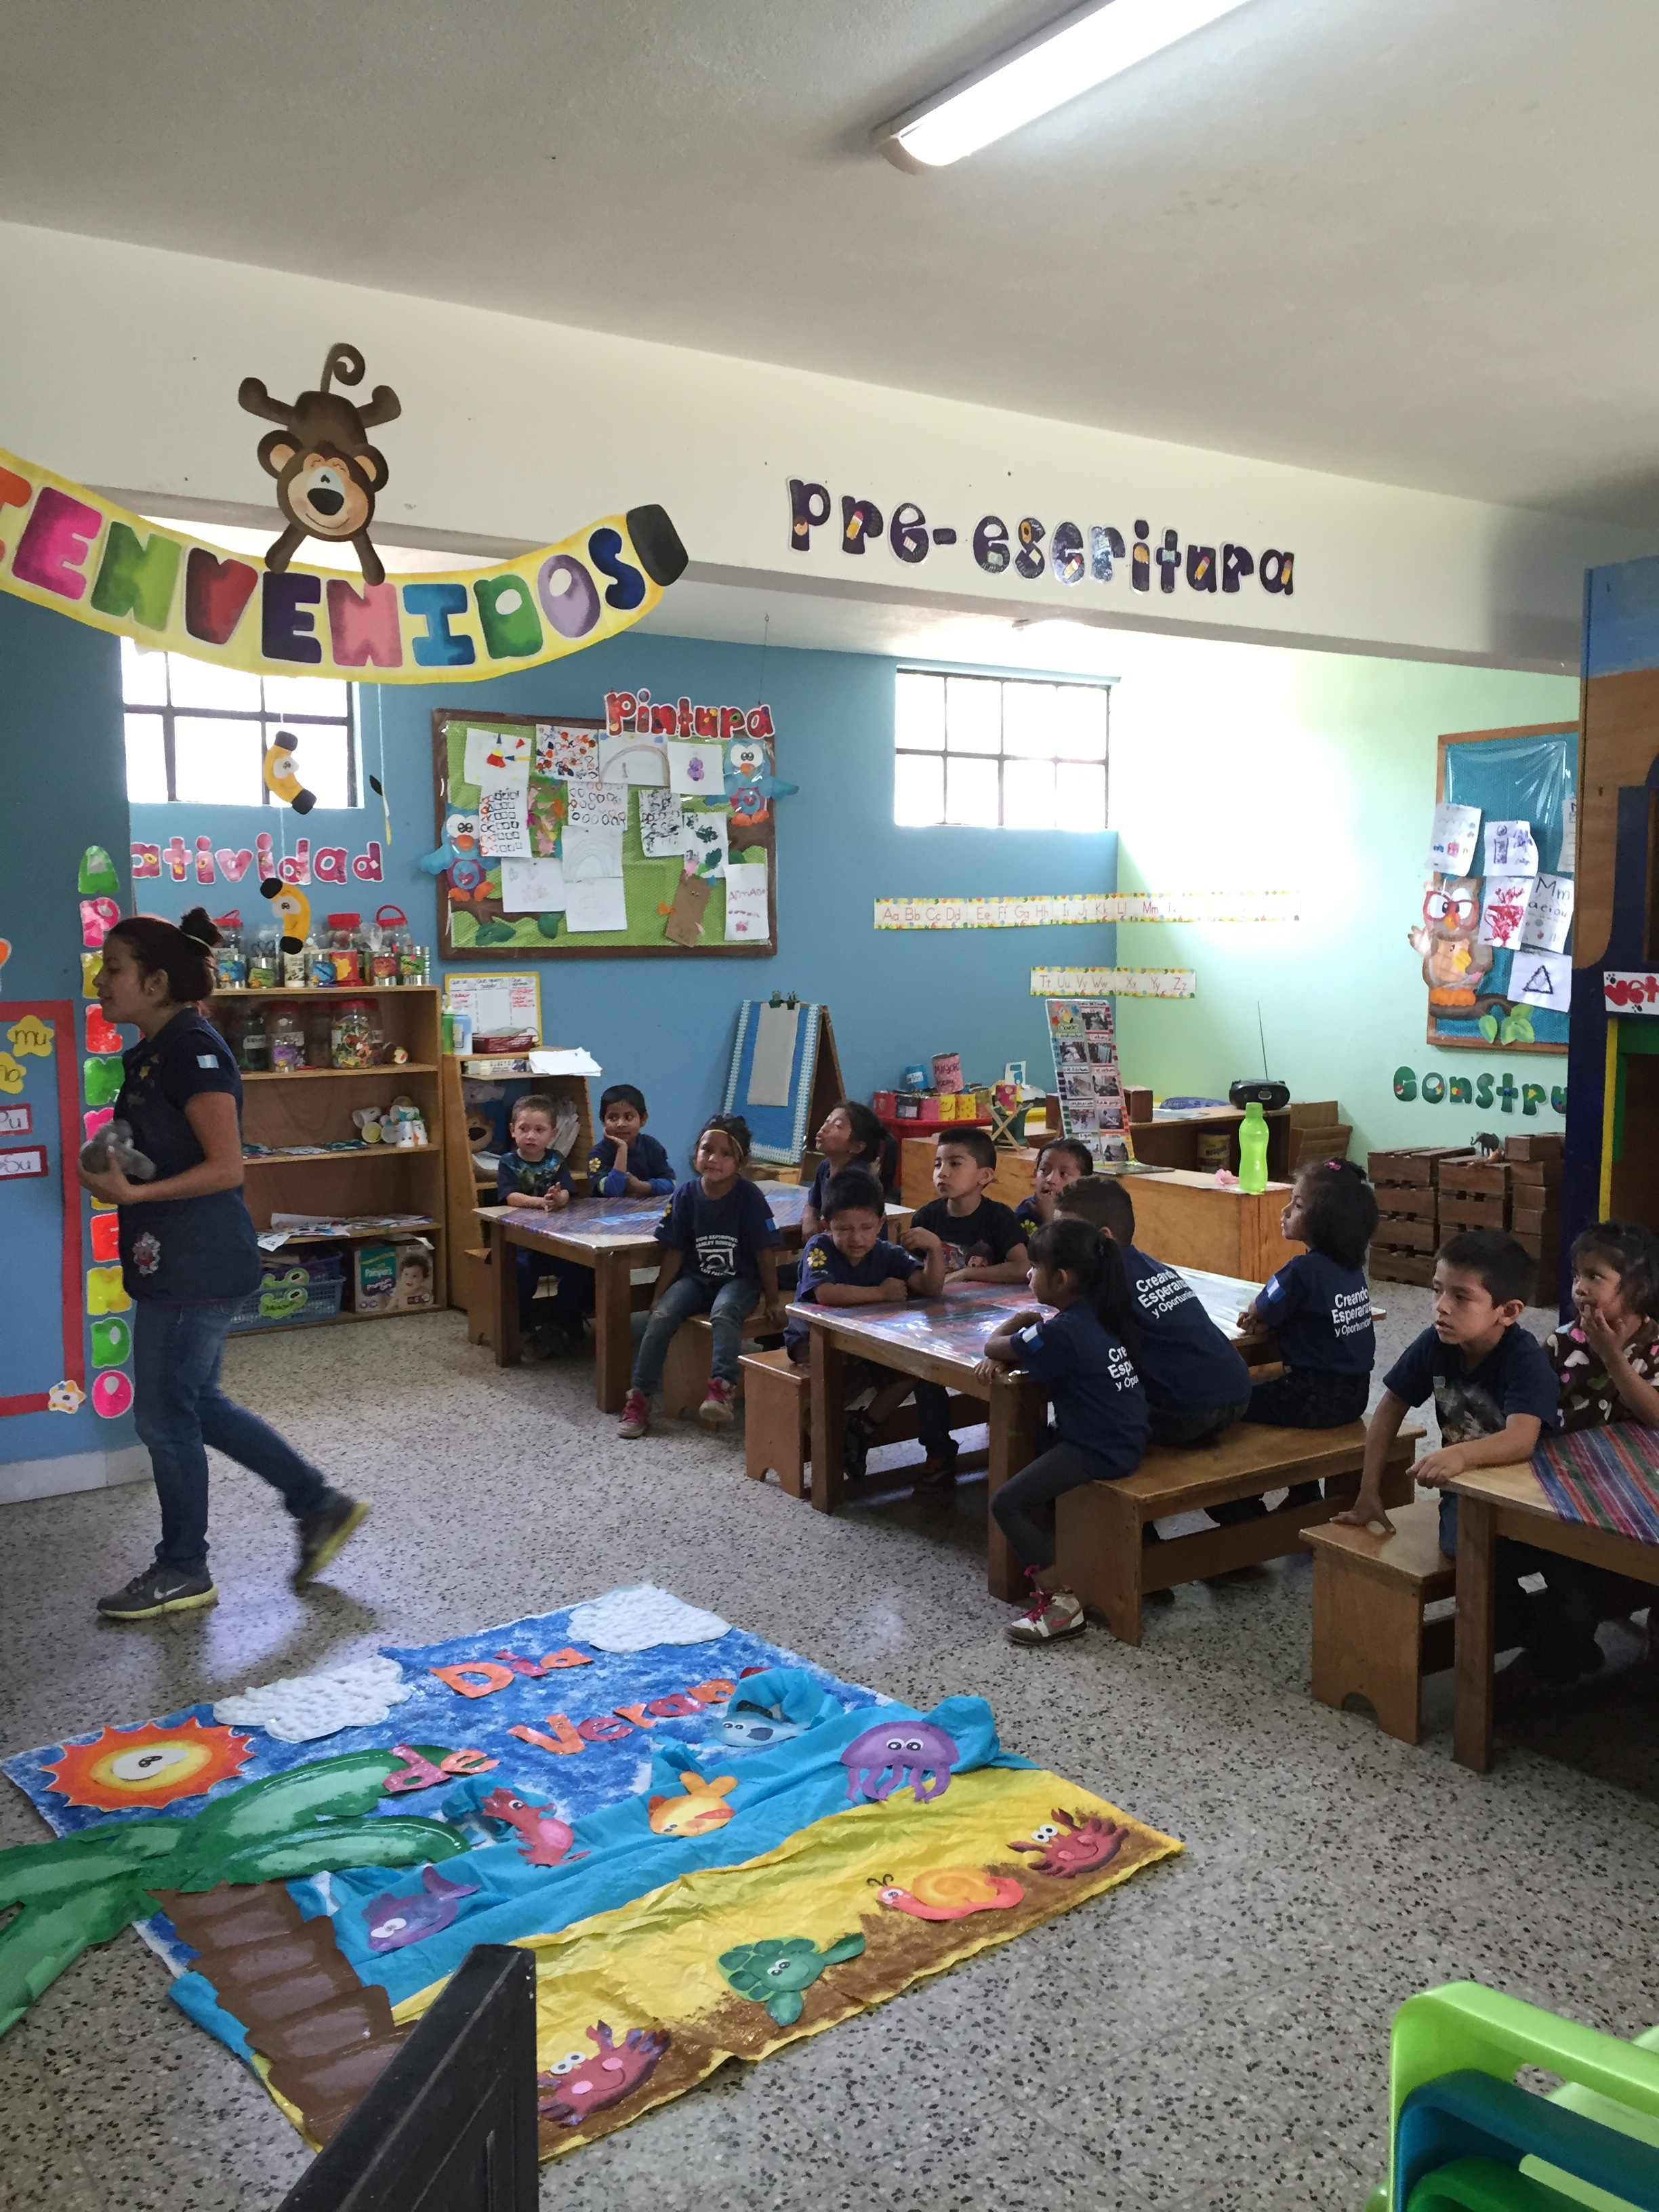 Since Safe Passage built this school, children are no longer permitted to work in the Guatemala City Garbage Dump. Instead, 550 of them attend classes here, such as the kindergarten pictured above.